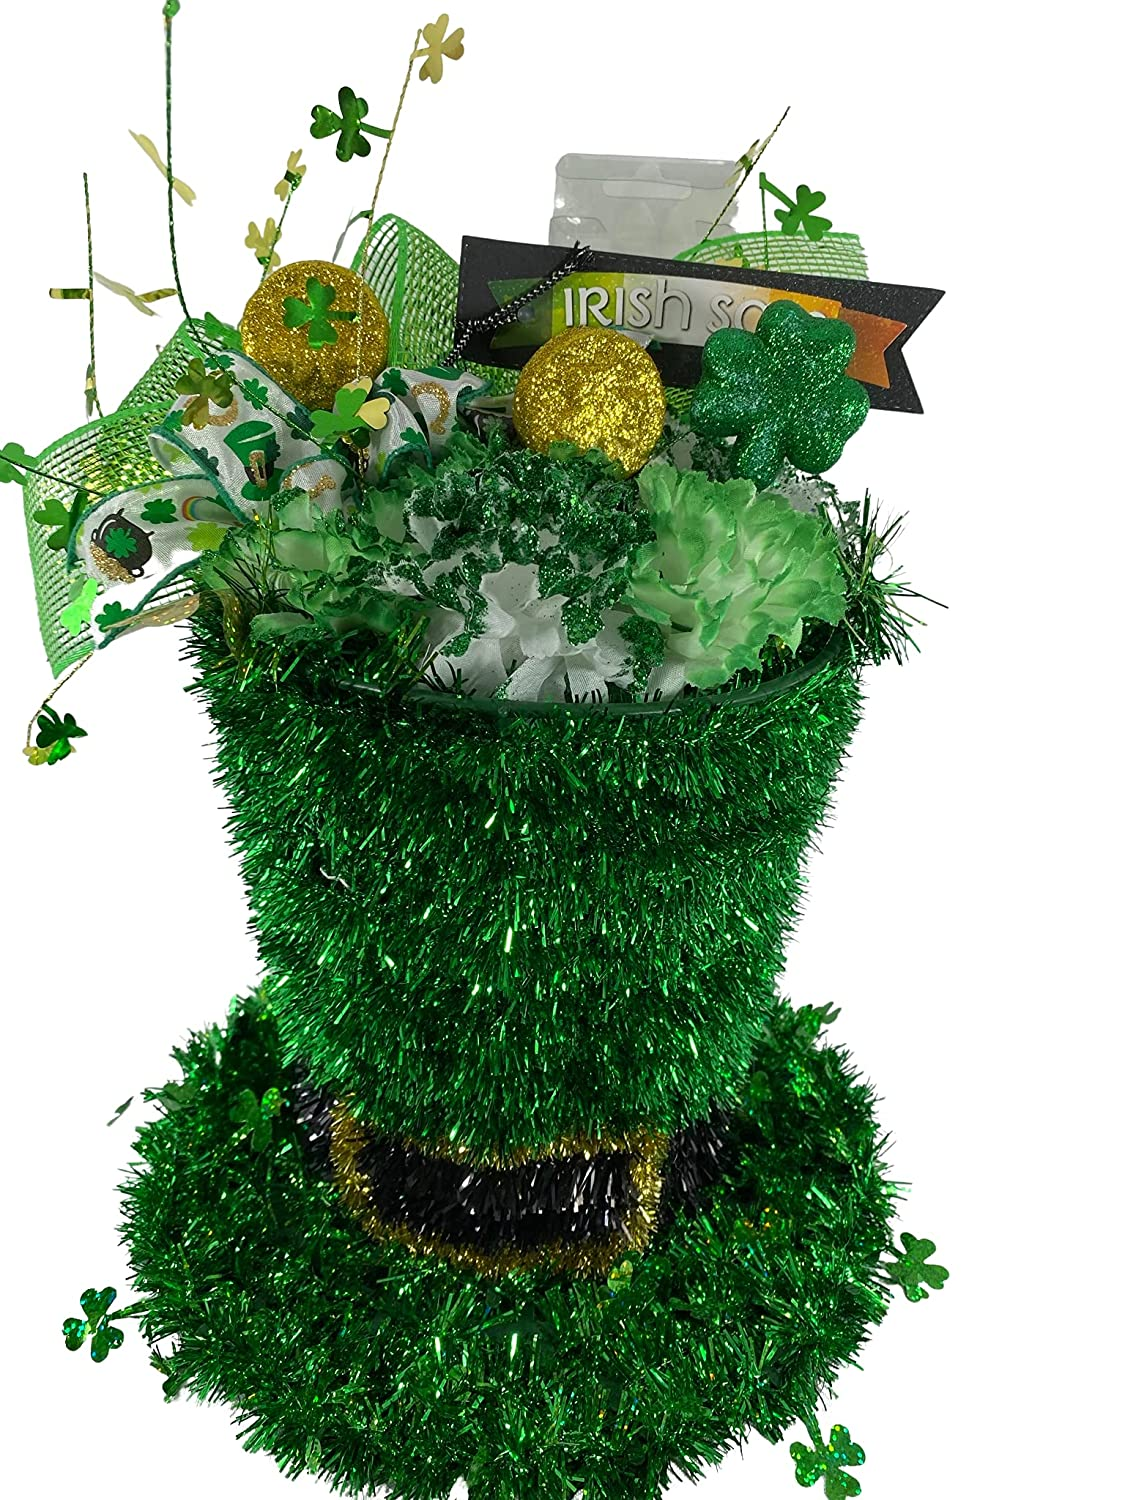 AGD St Large special price Patrick's Max 85% OFF Decor - Tinsel Cente Tophat Green Lighted